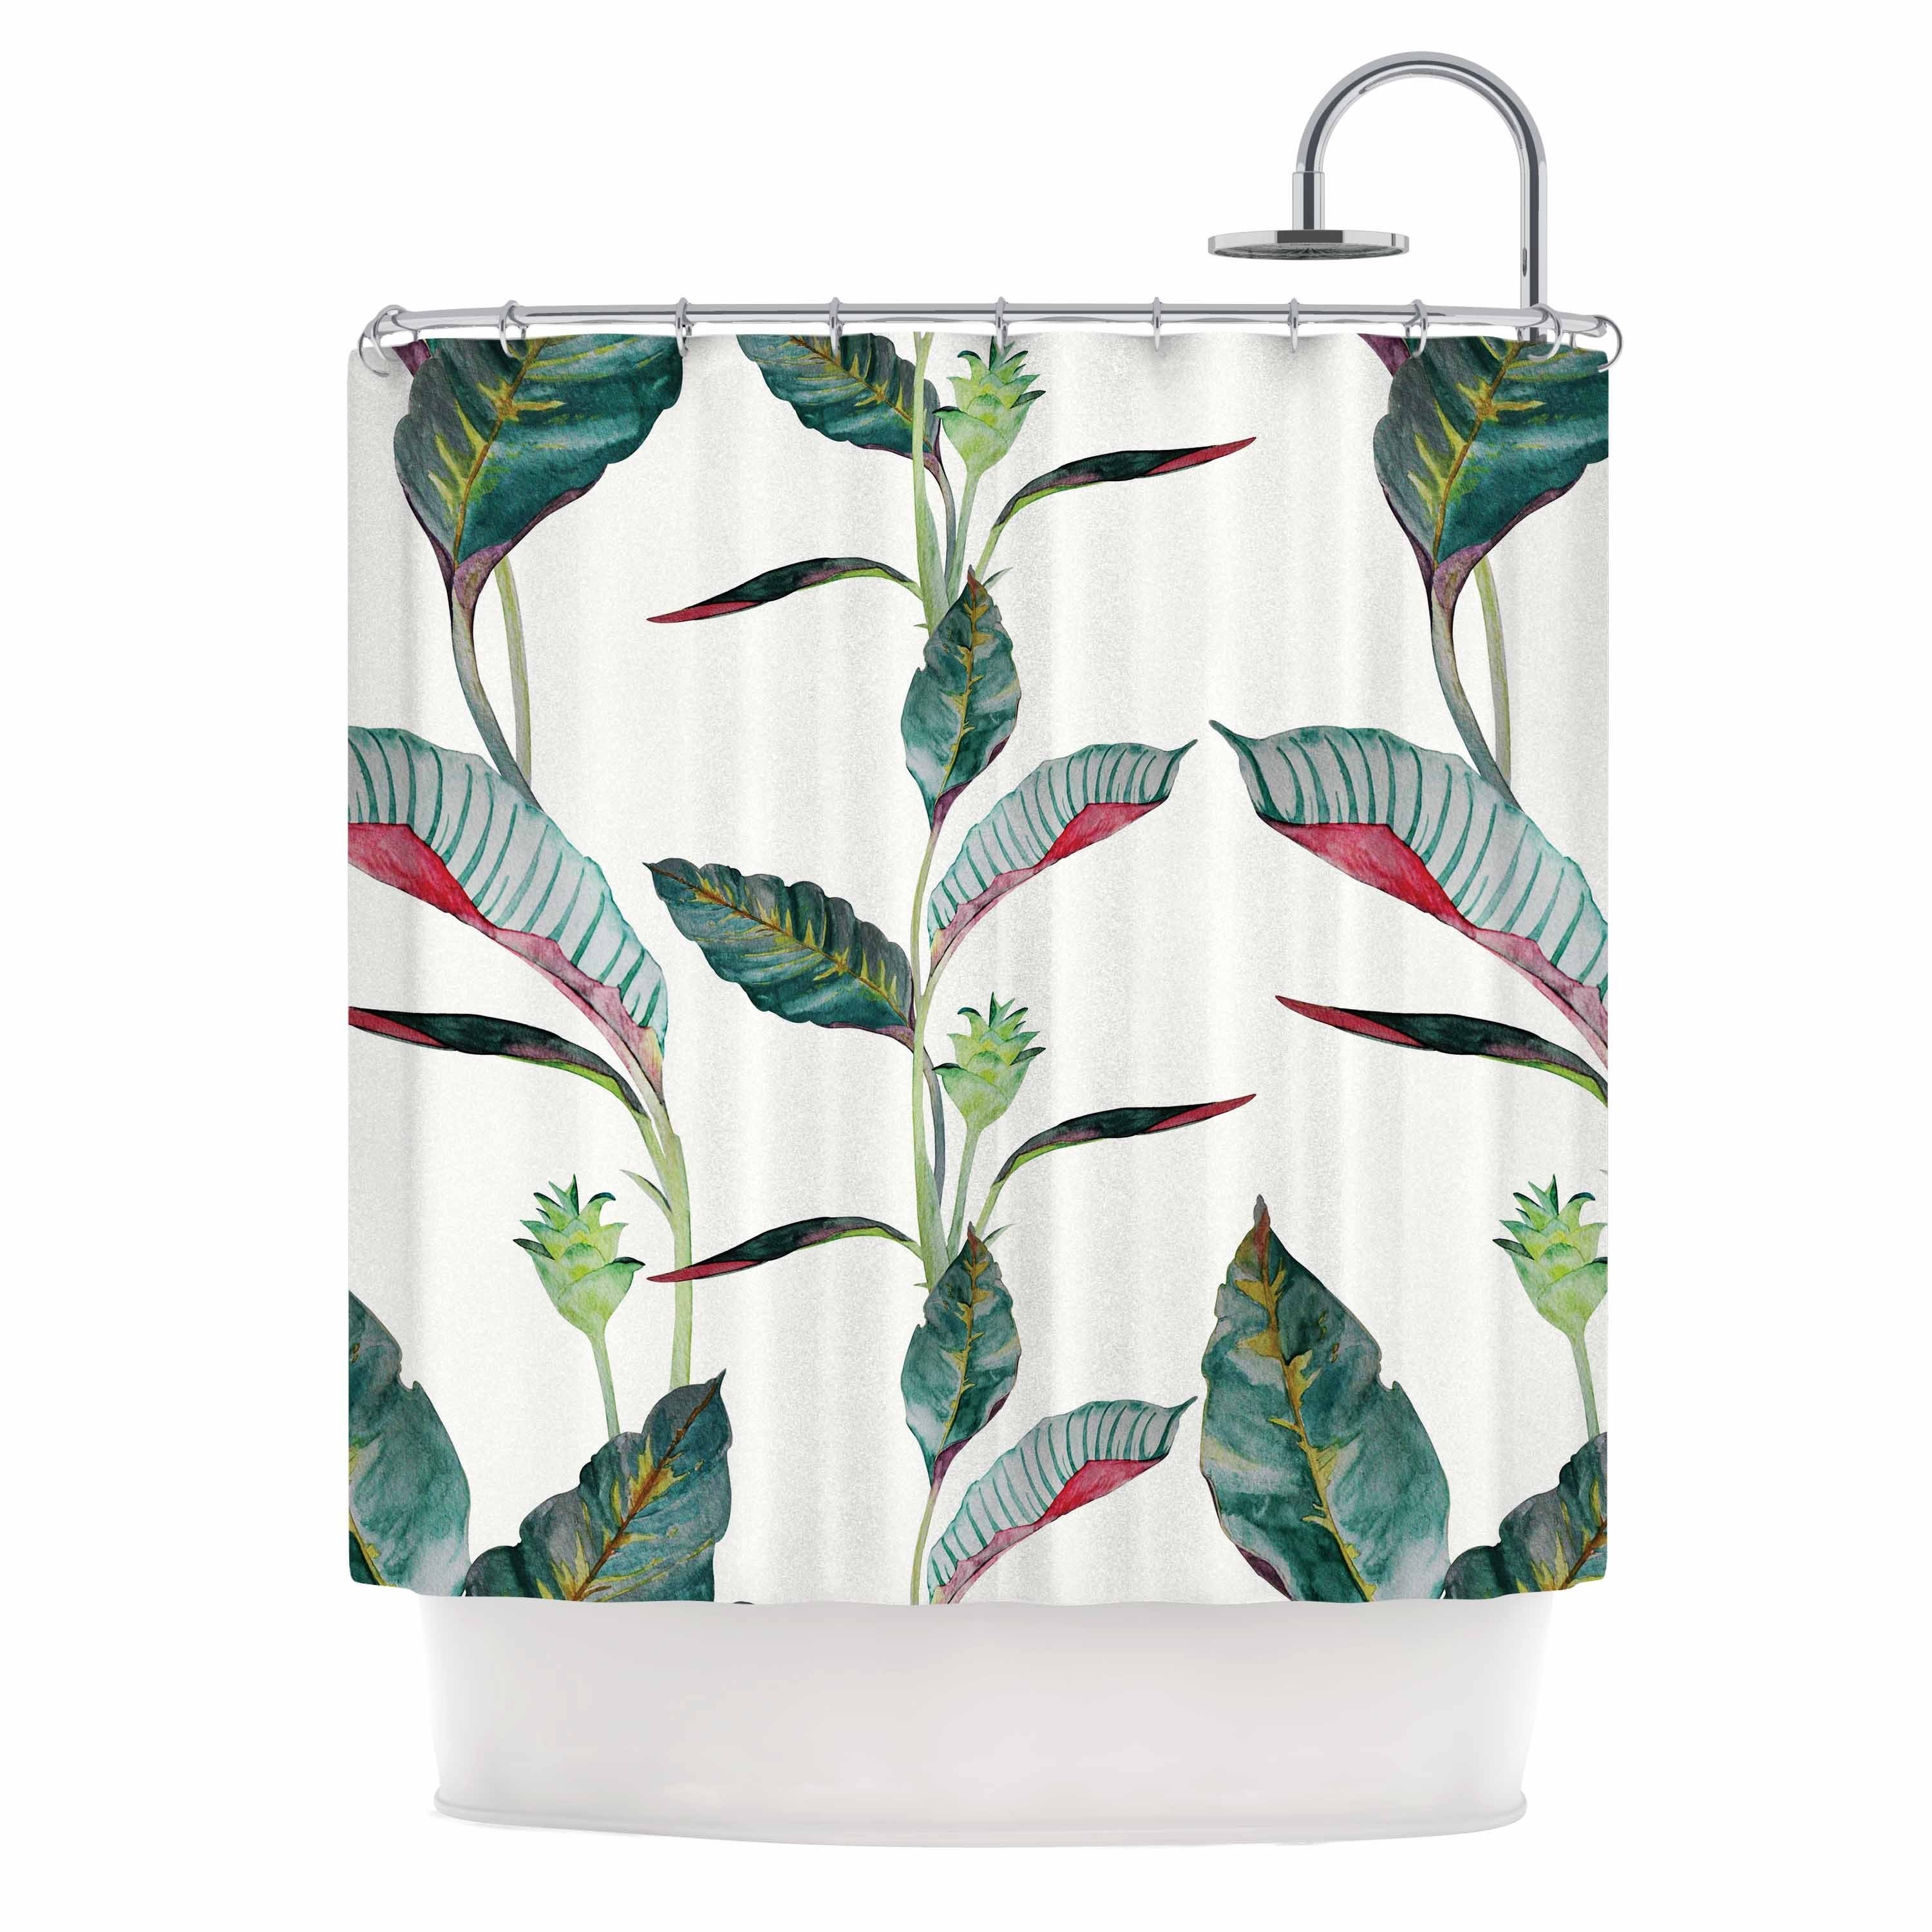 Shop KESS InHouse DLKG Design Ana Black Olive Shower Curtain 69x70